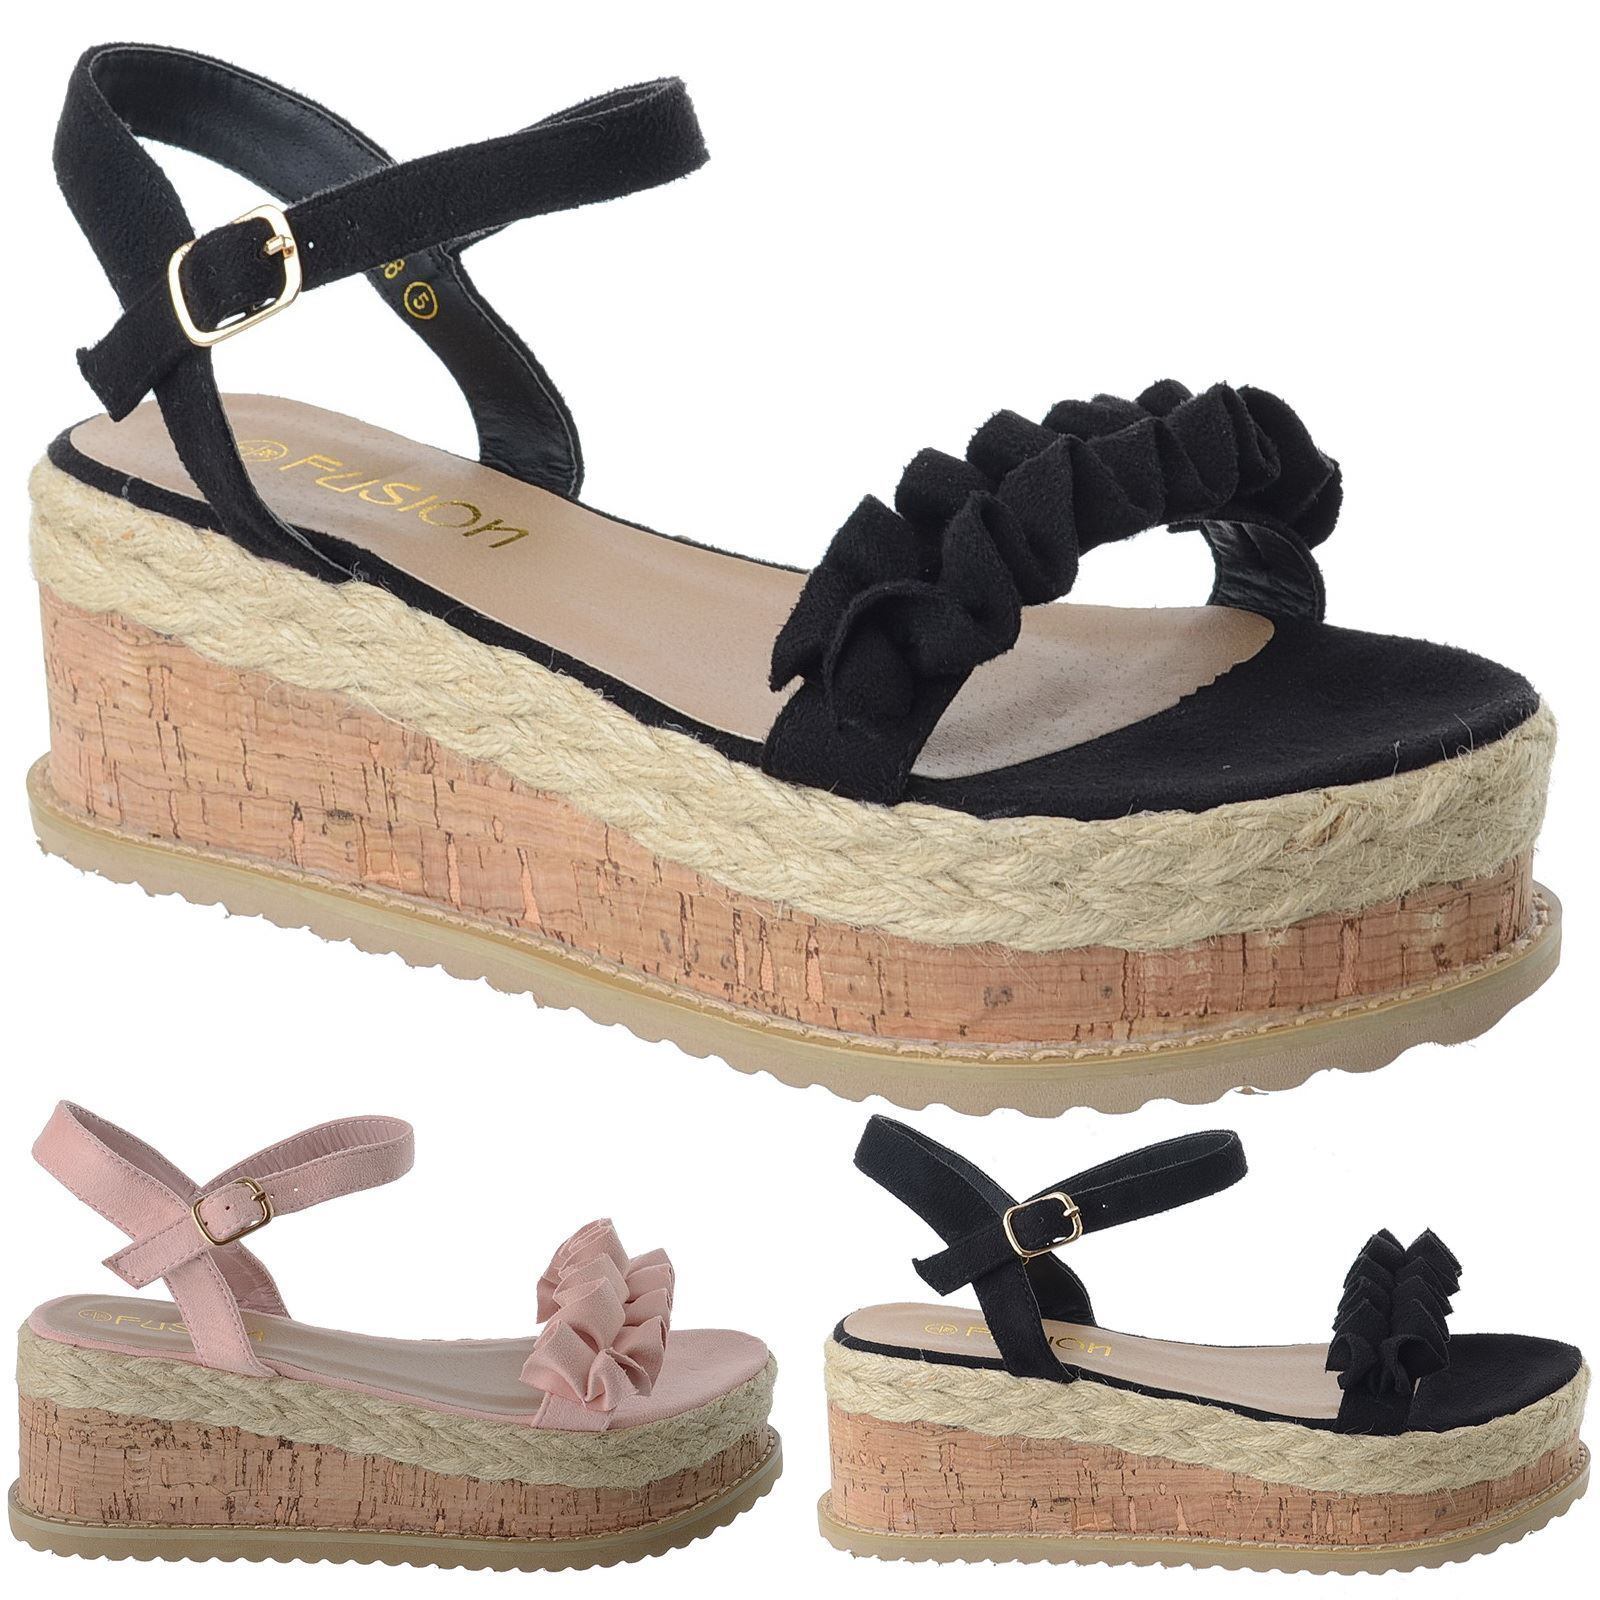 NEW LADIES WOMENS ANKLE STRAP CORK SHOES ESPADRILLE PLATFORM WEDGES SANDALS SHOES CORK SIZE 035d67